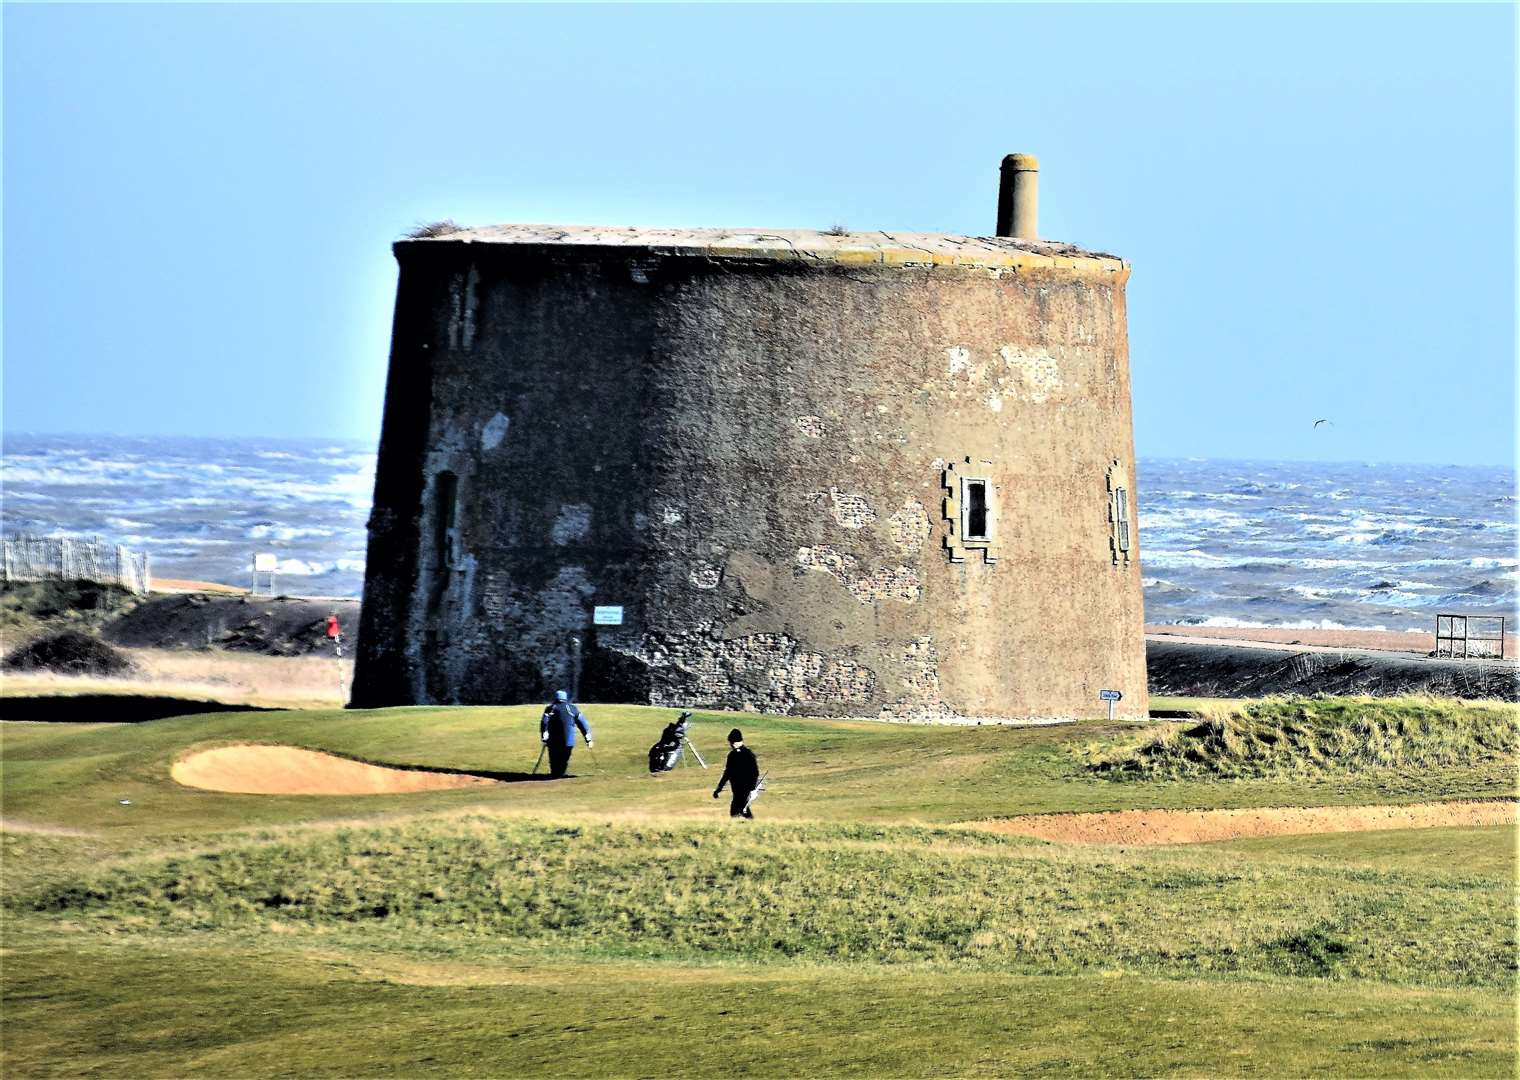 Felixstowe Ferry Golf Club's iconic Martello Tower.